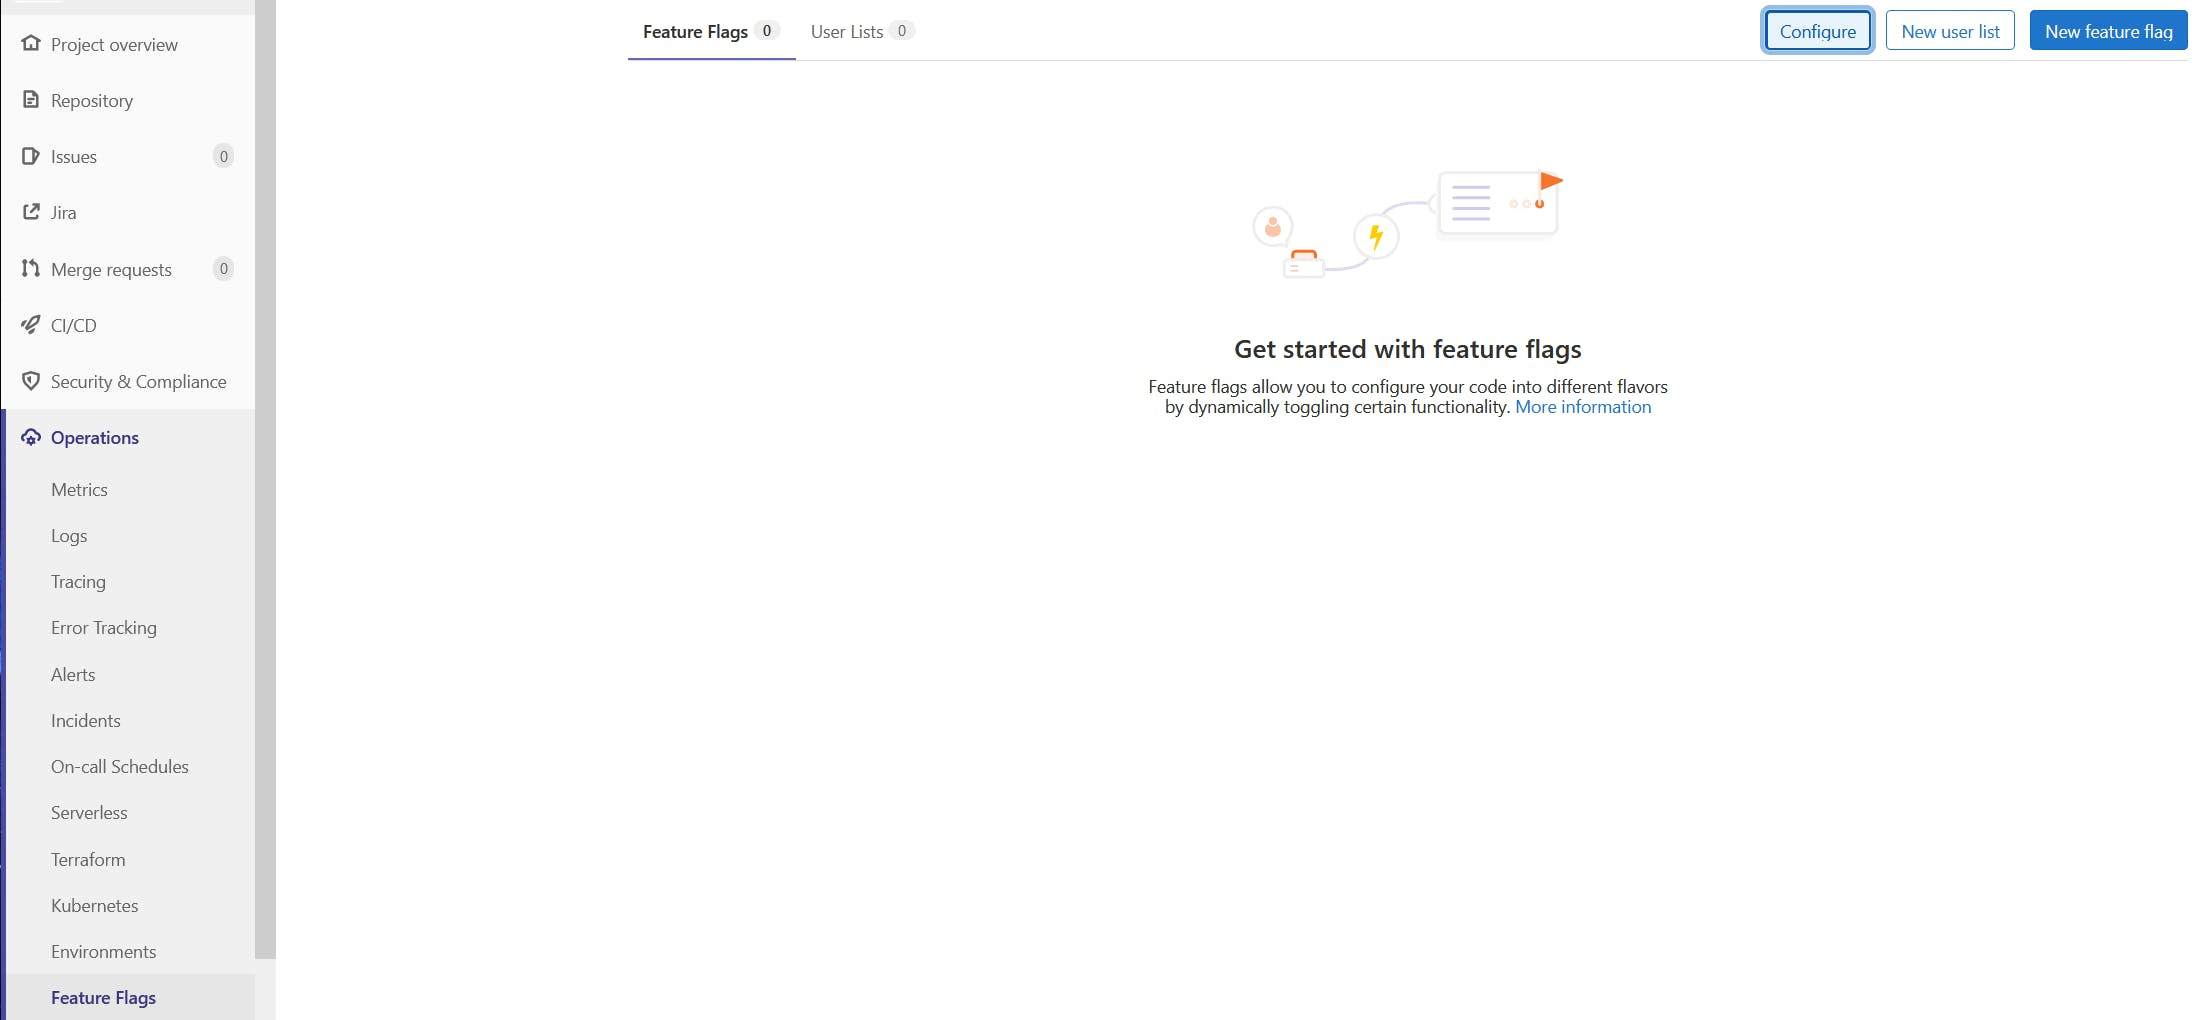 feature-flags-configure.png